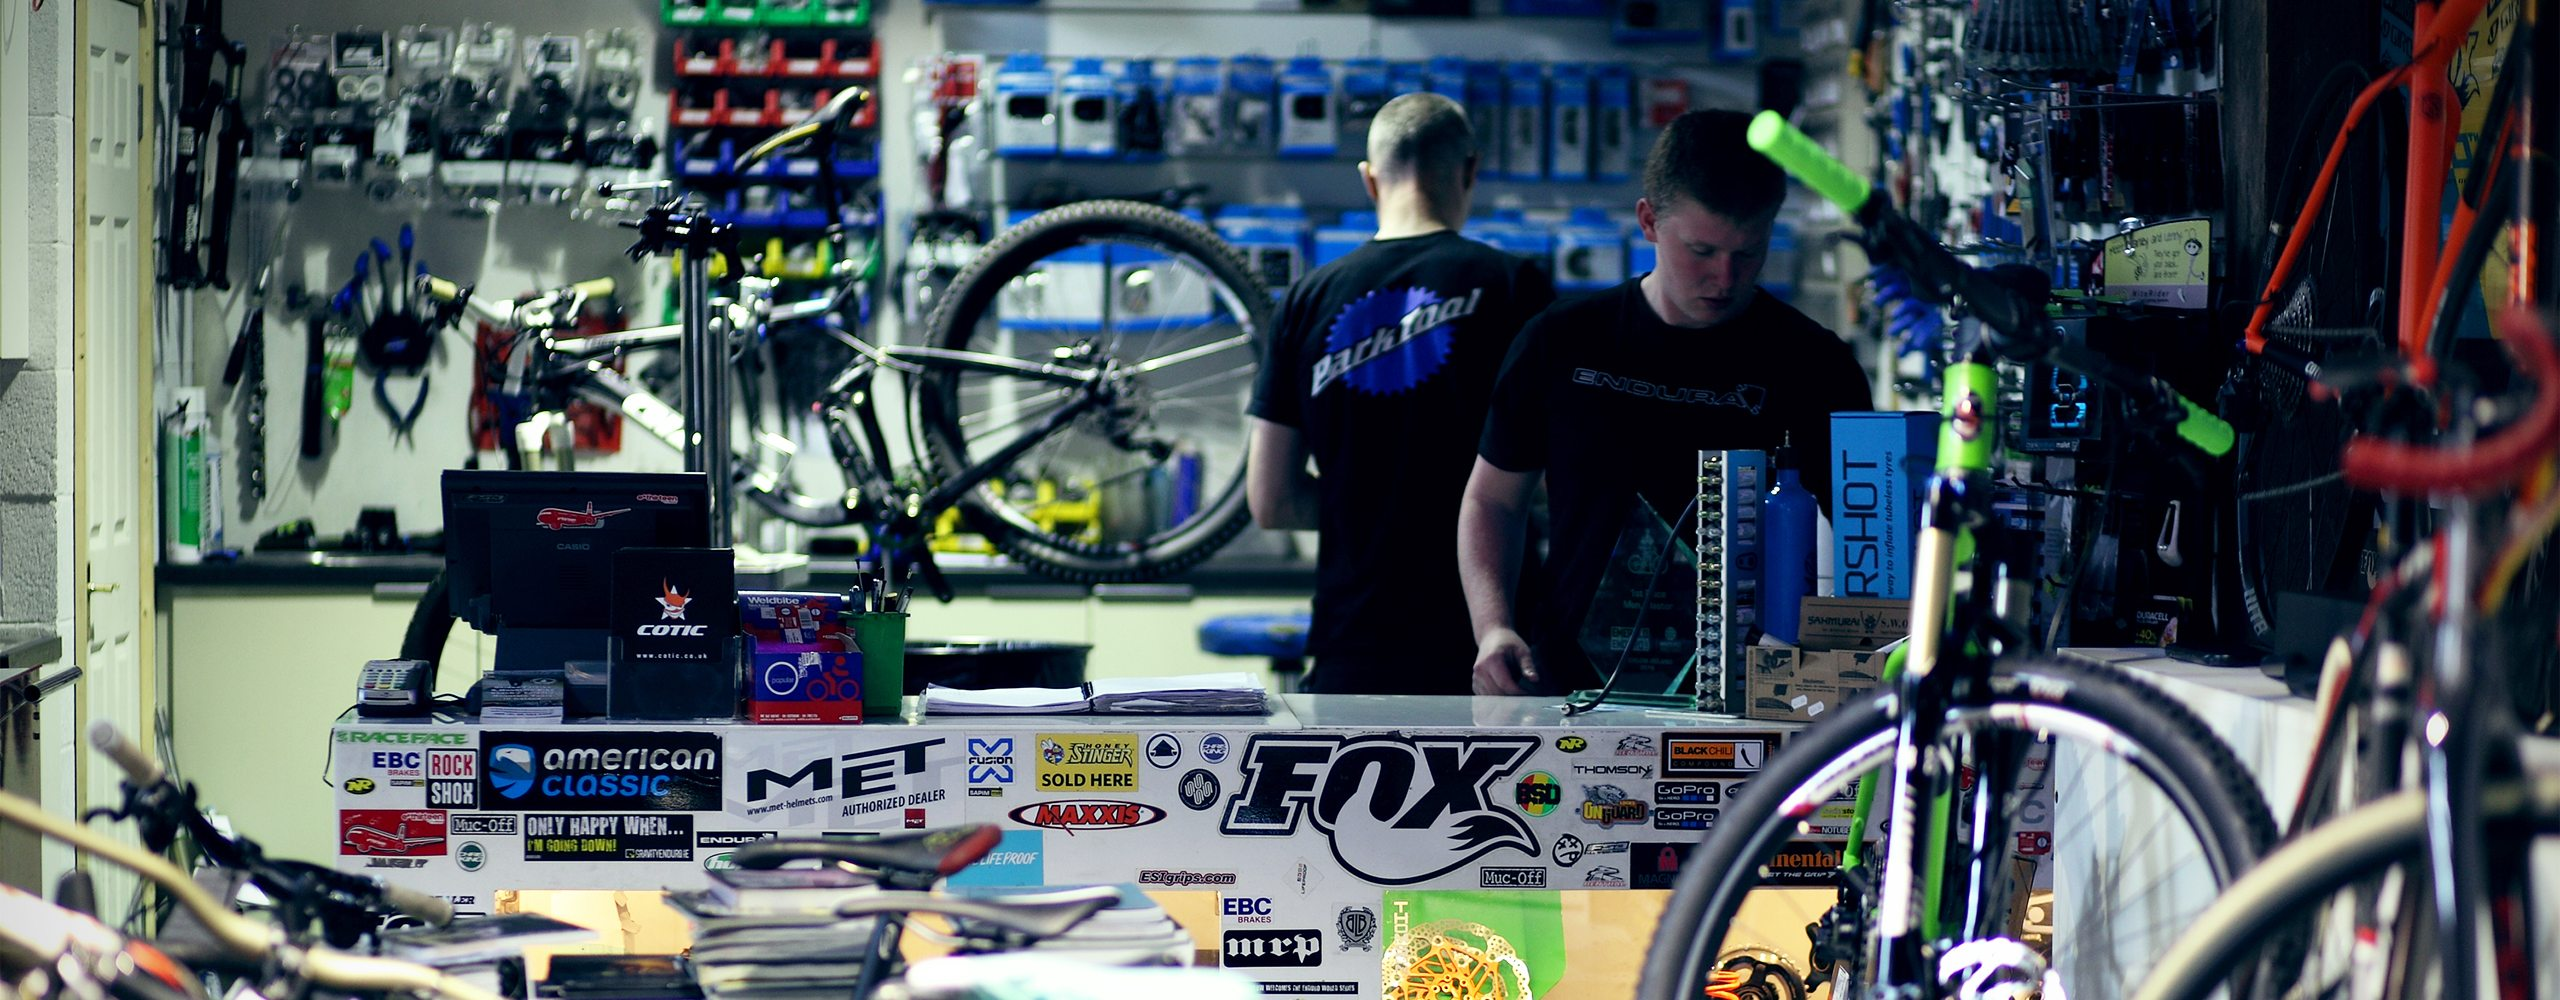 Expert Cycles - Bike Shop Dublin